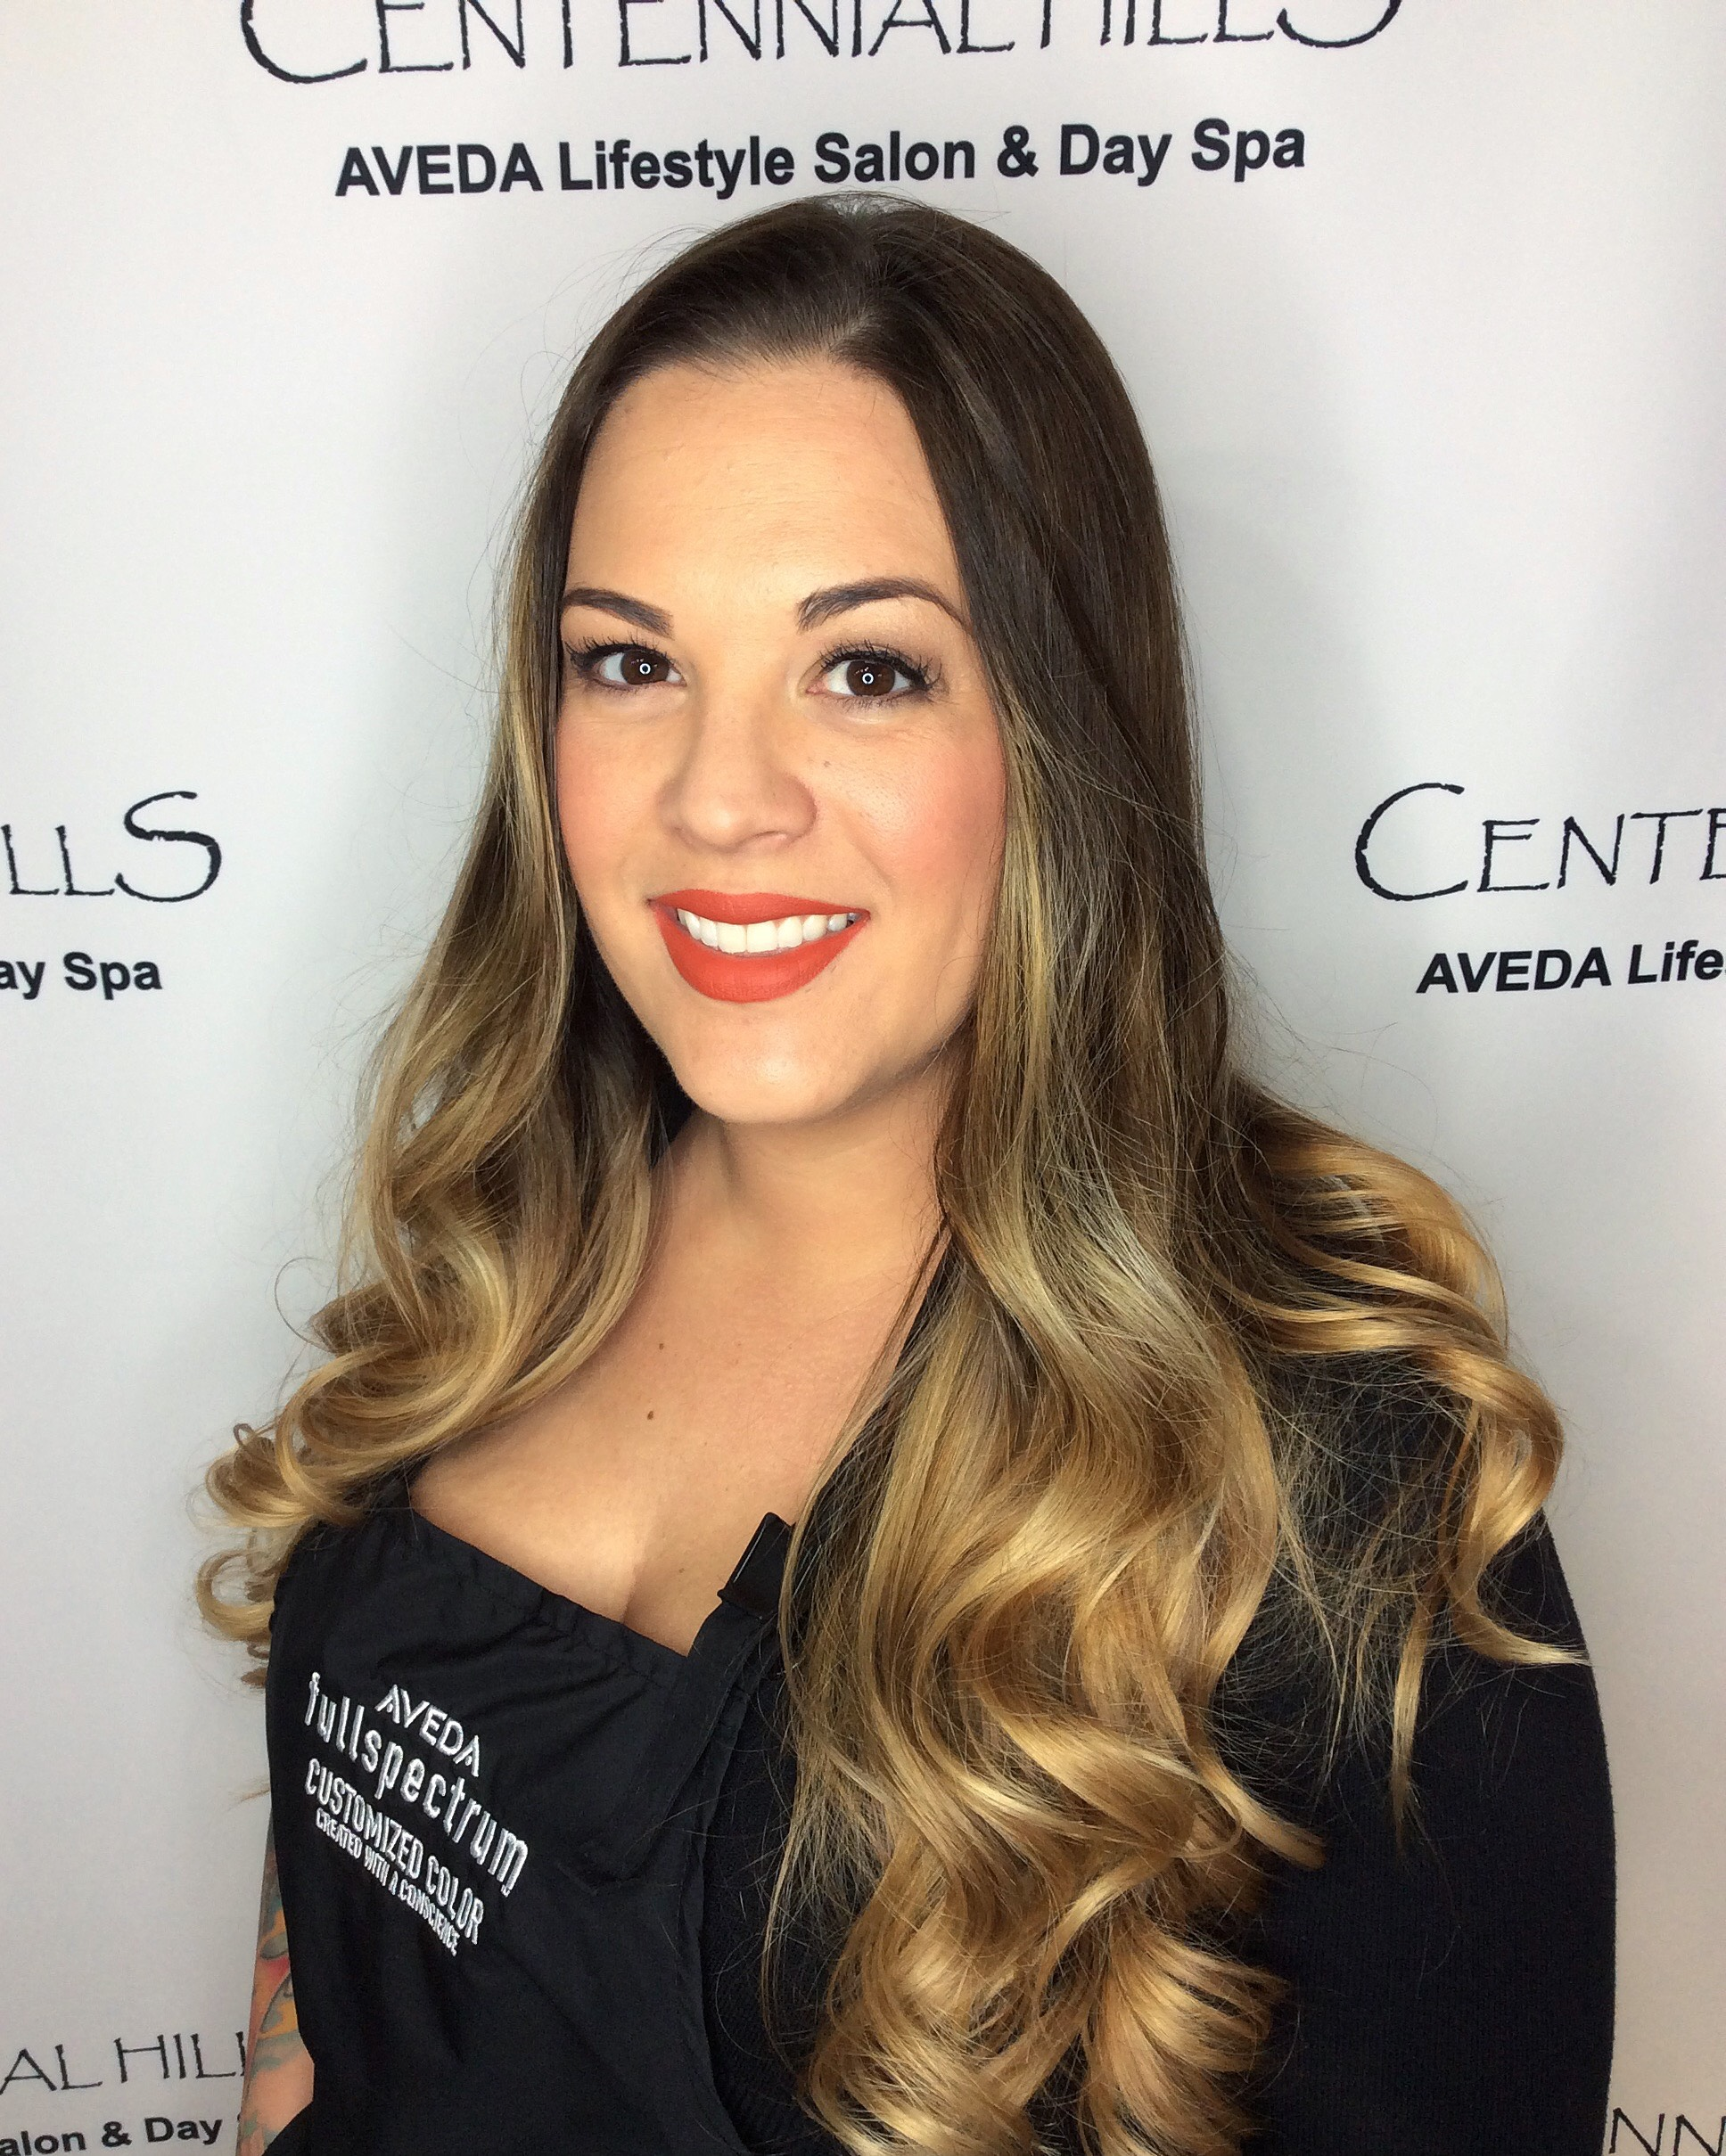 Centennial Hills Aveda Salon And Day Spa